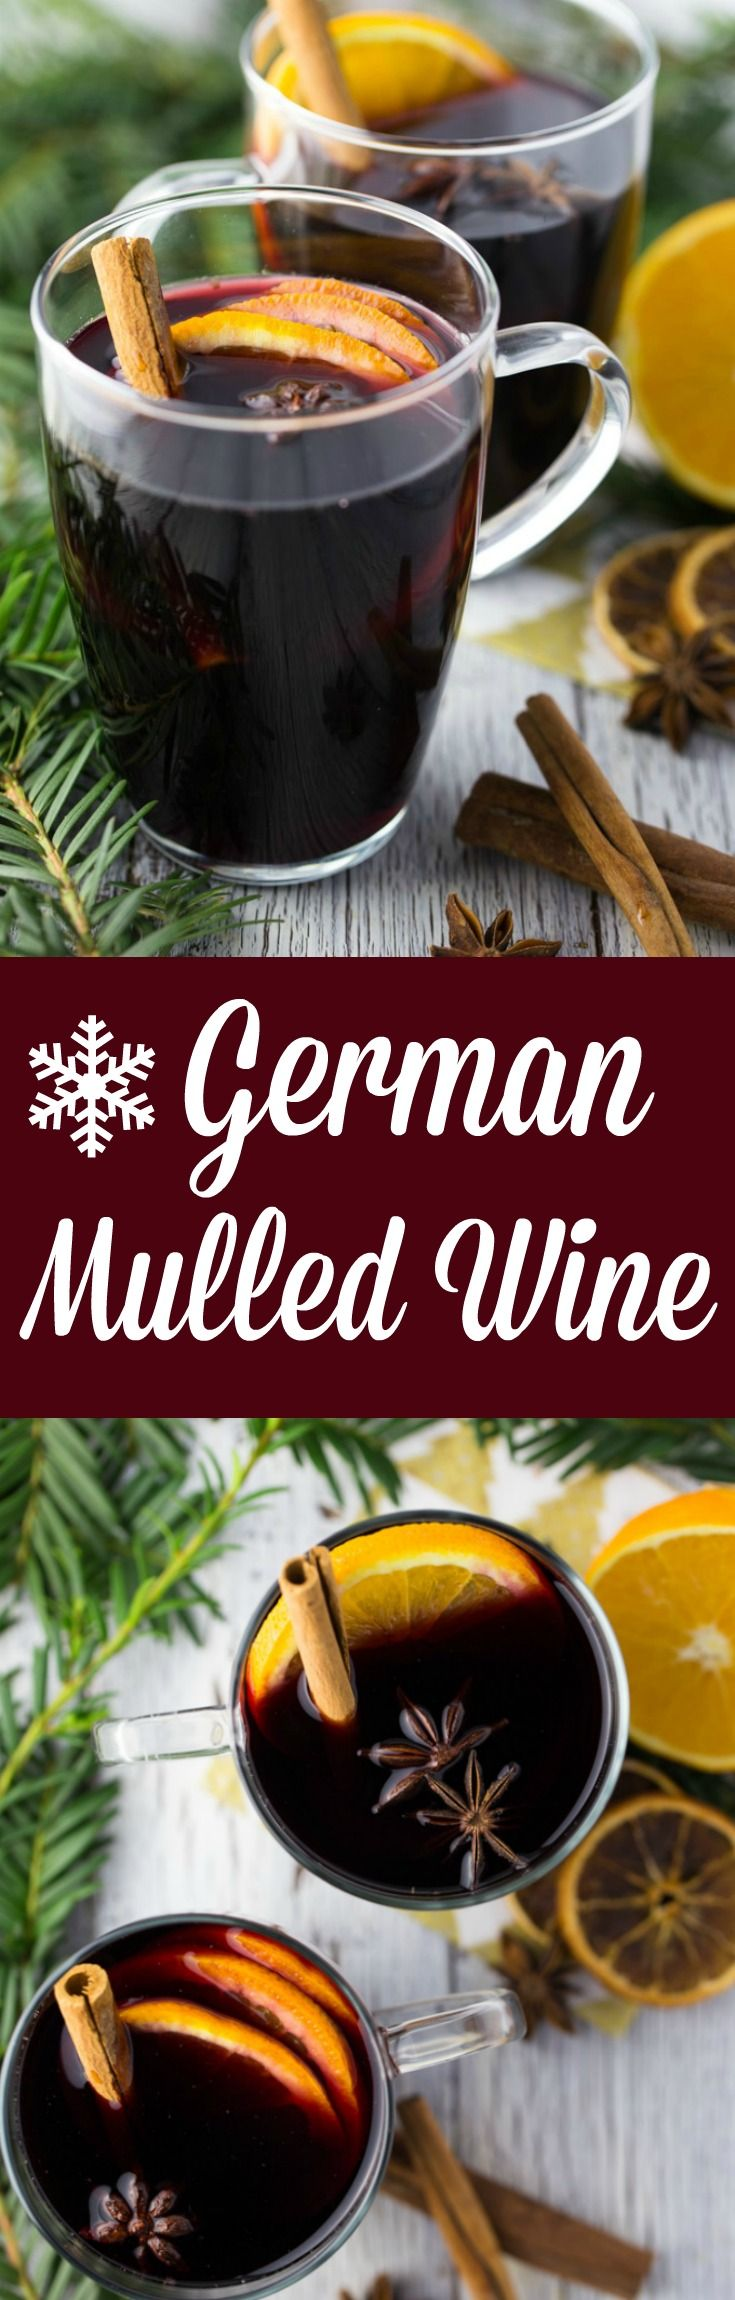 This German mulled wine is the perfect Christmas drink! It's prepared from red wine that is heated and spiced with Christmas spices. Ready in 10 minutes!